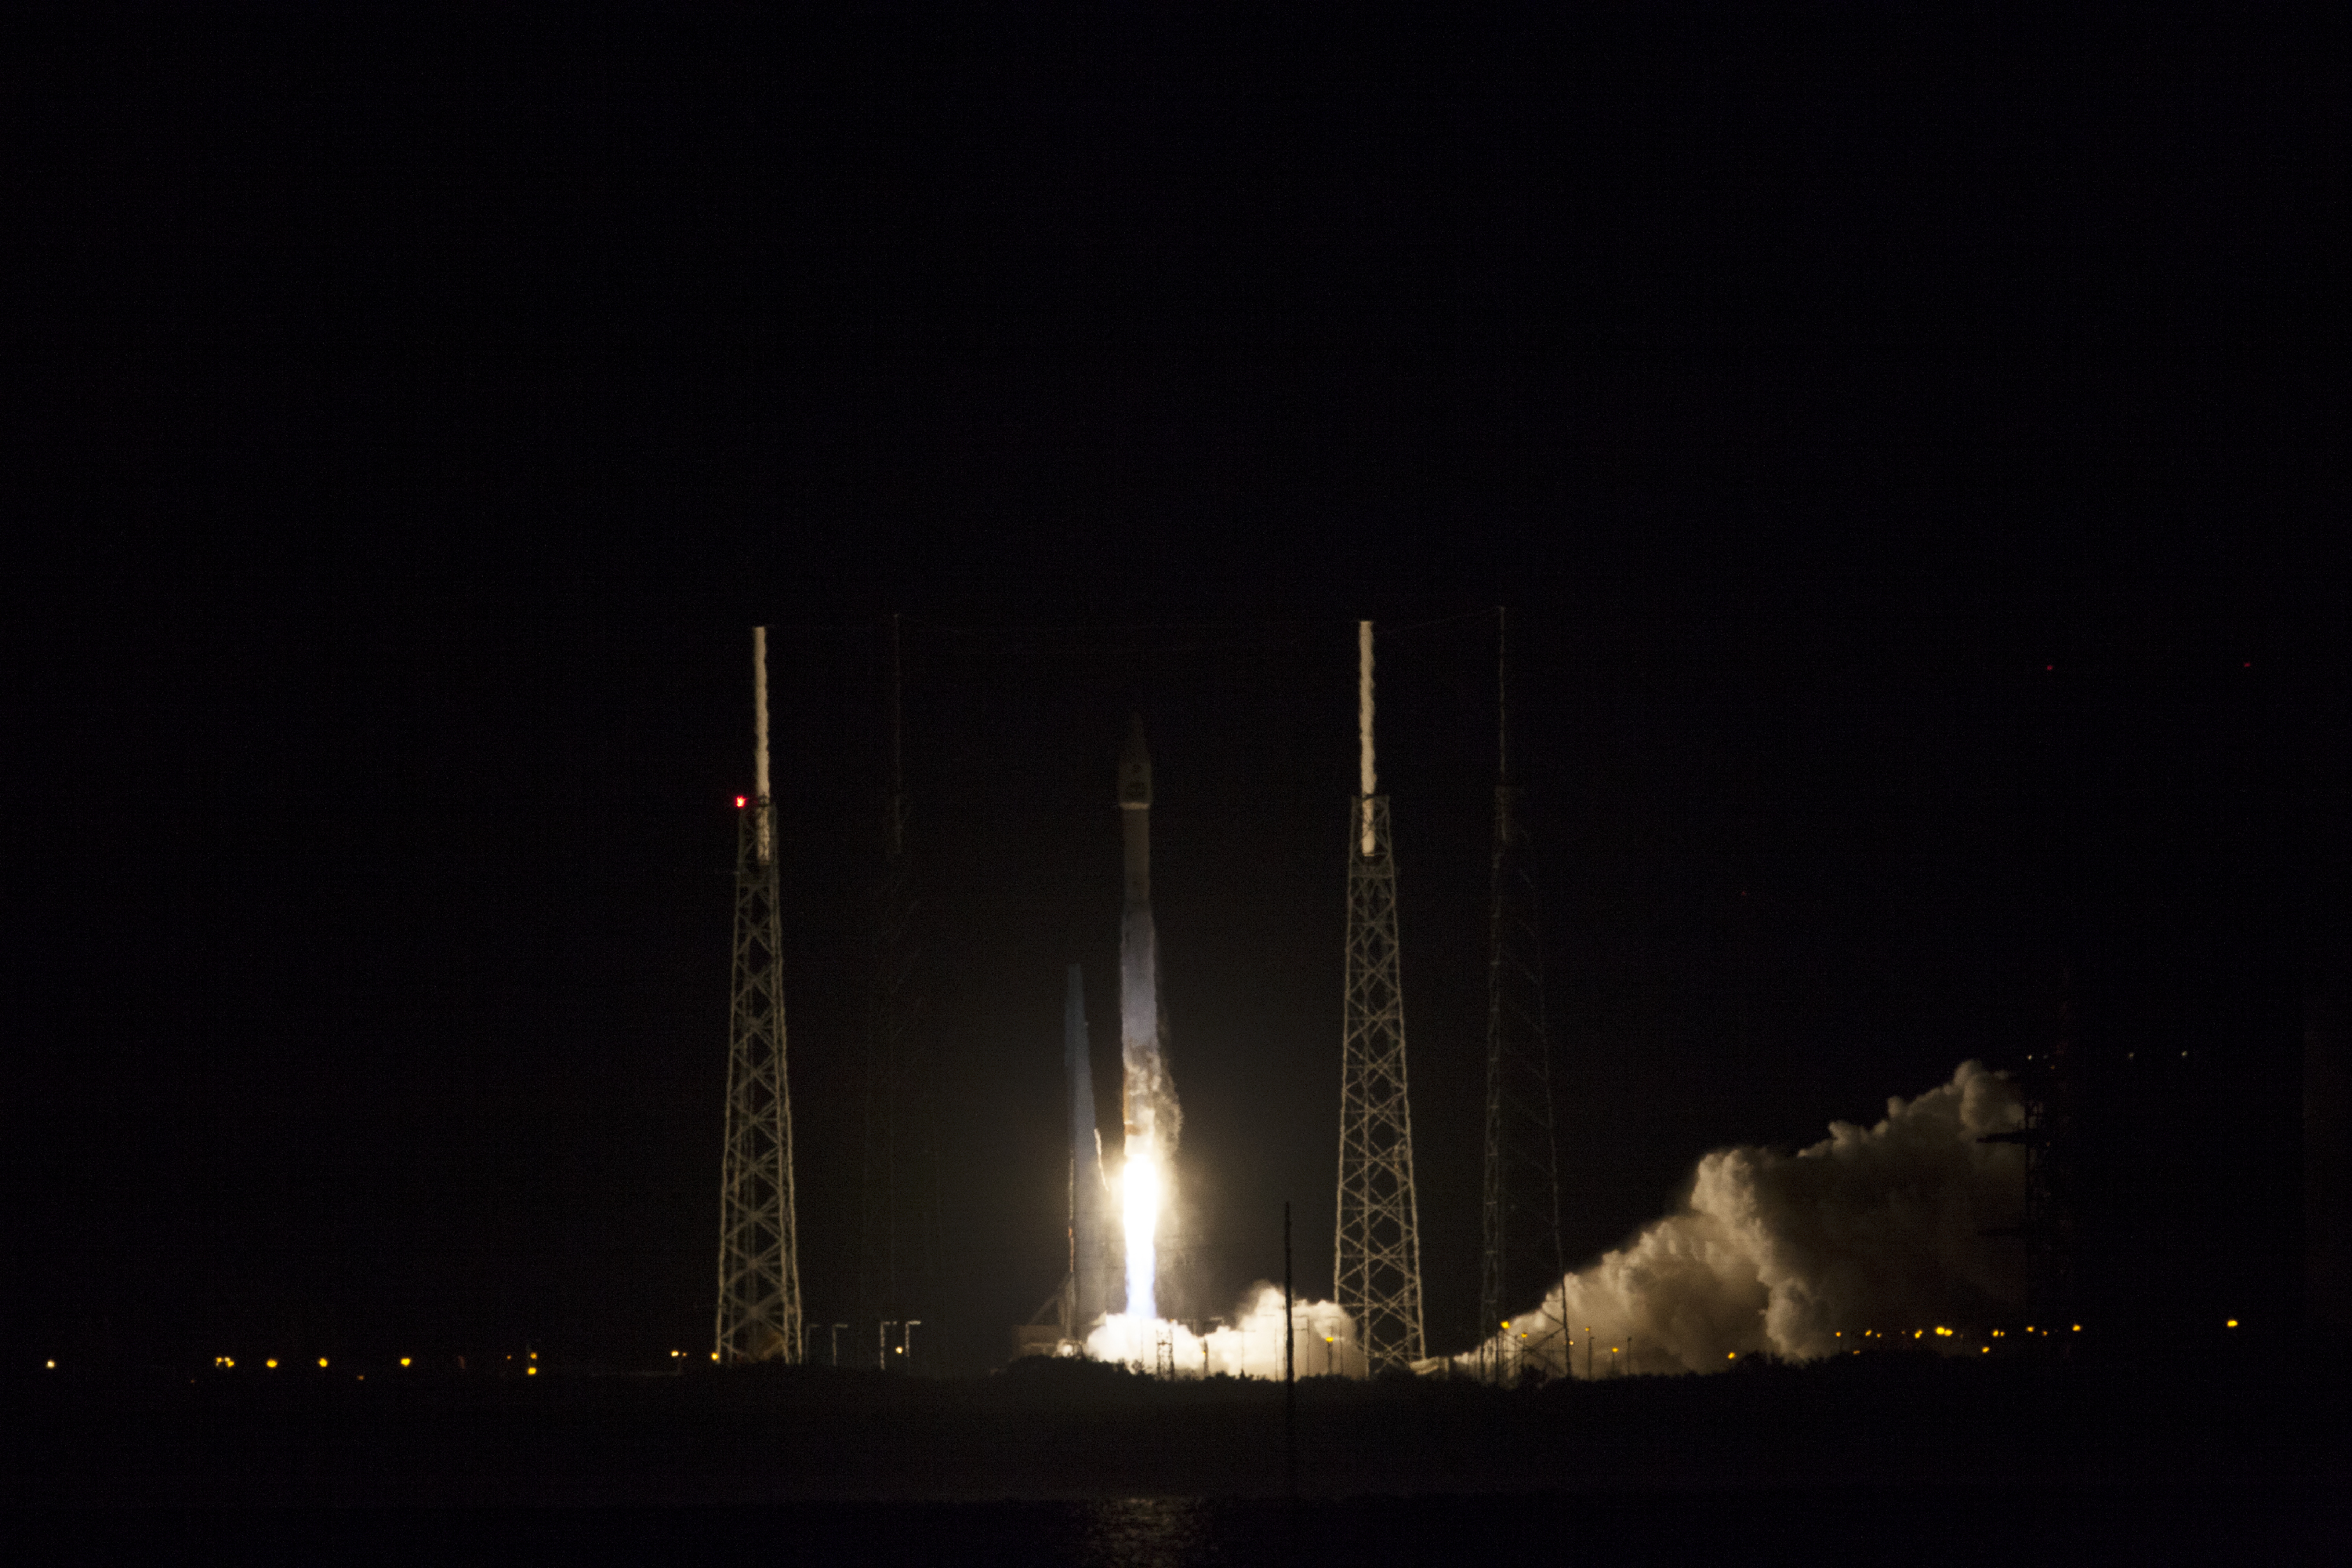 NASA Launches Third Generation Communications Satellite | NASA